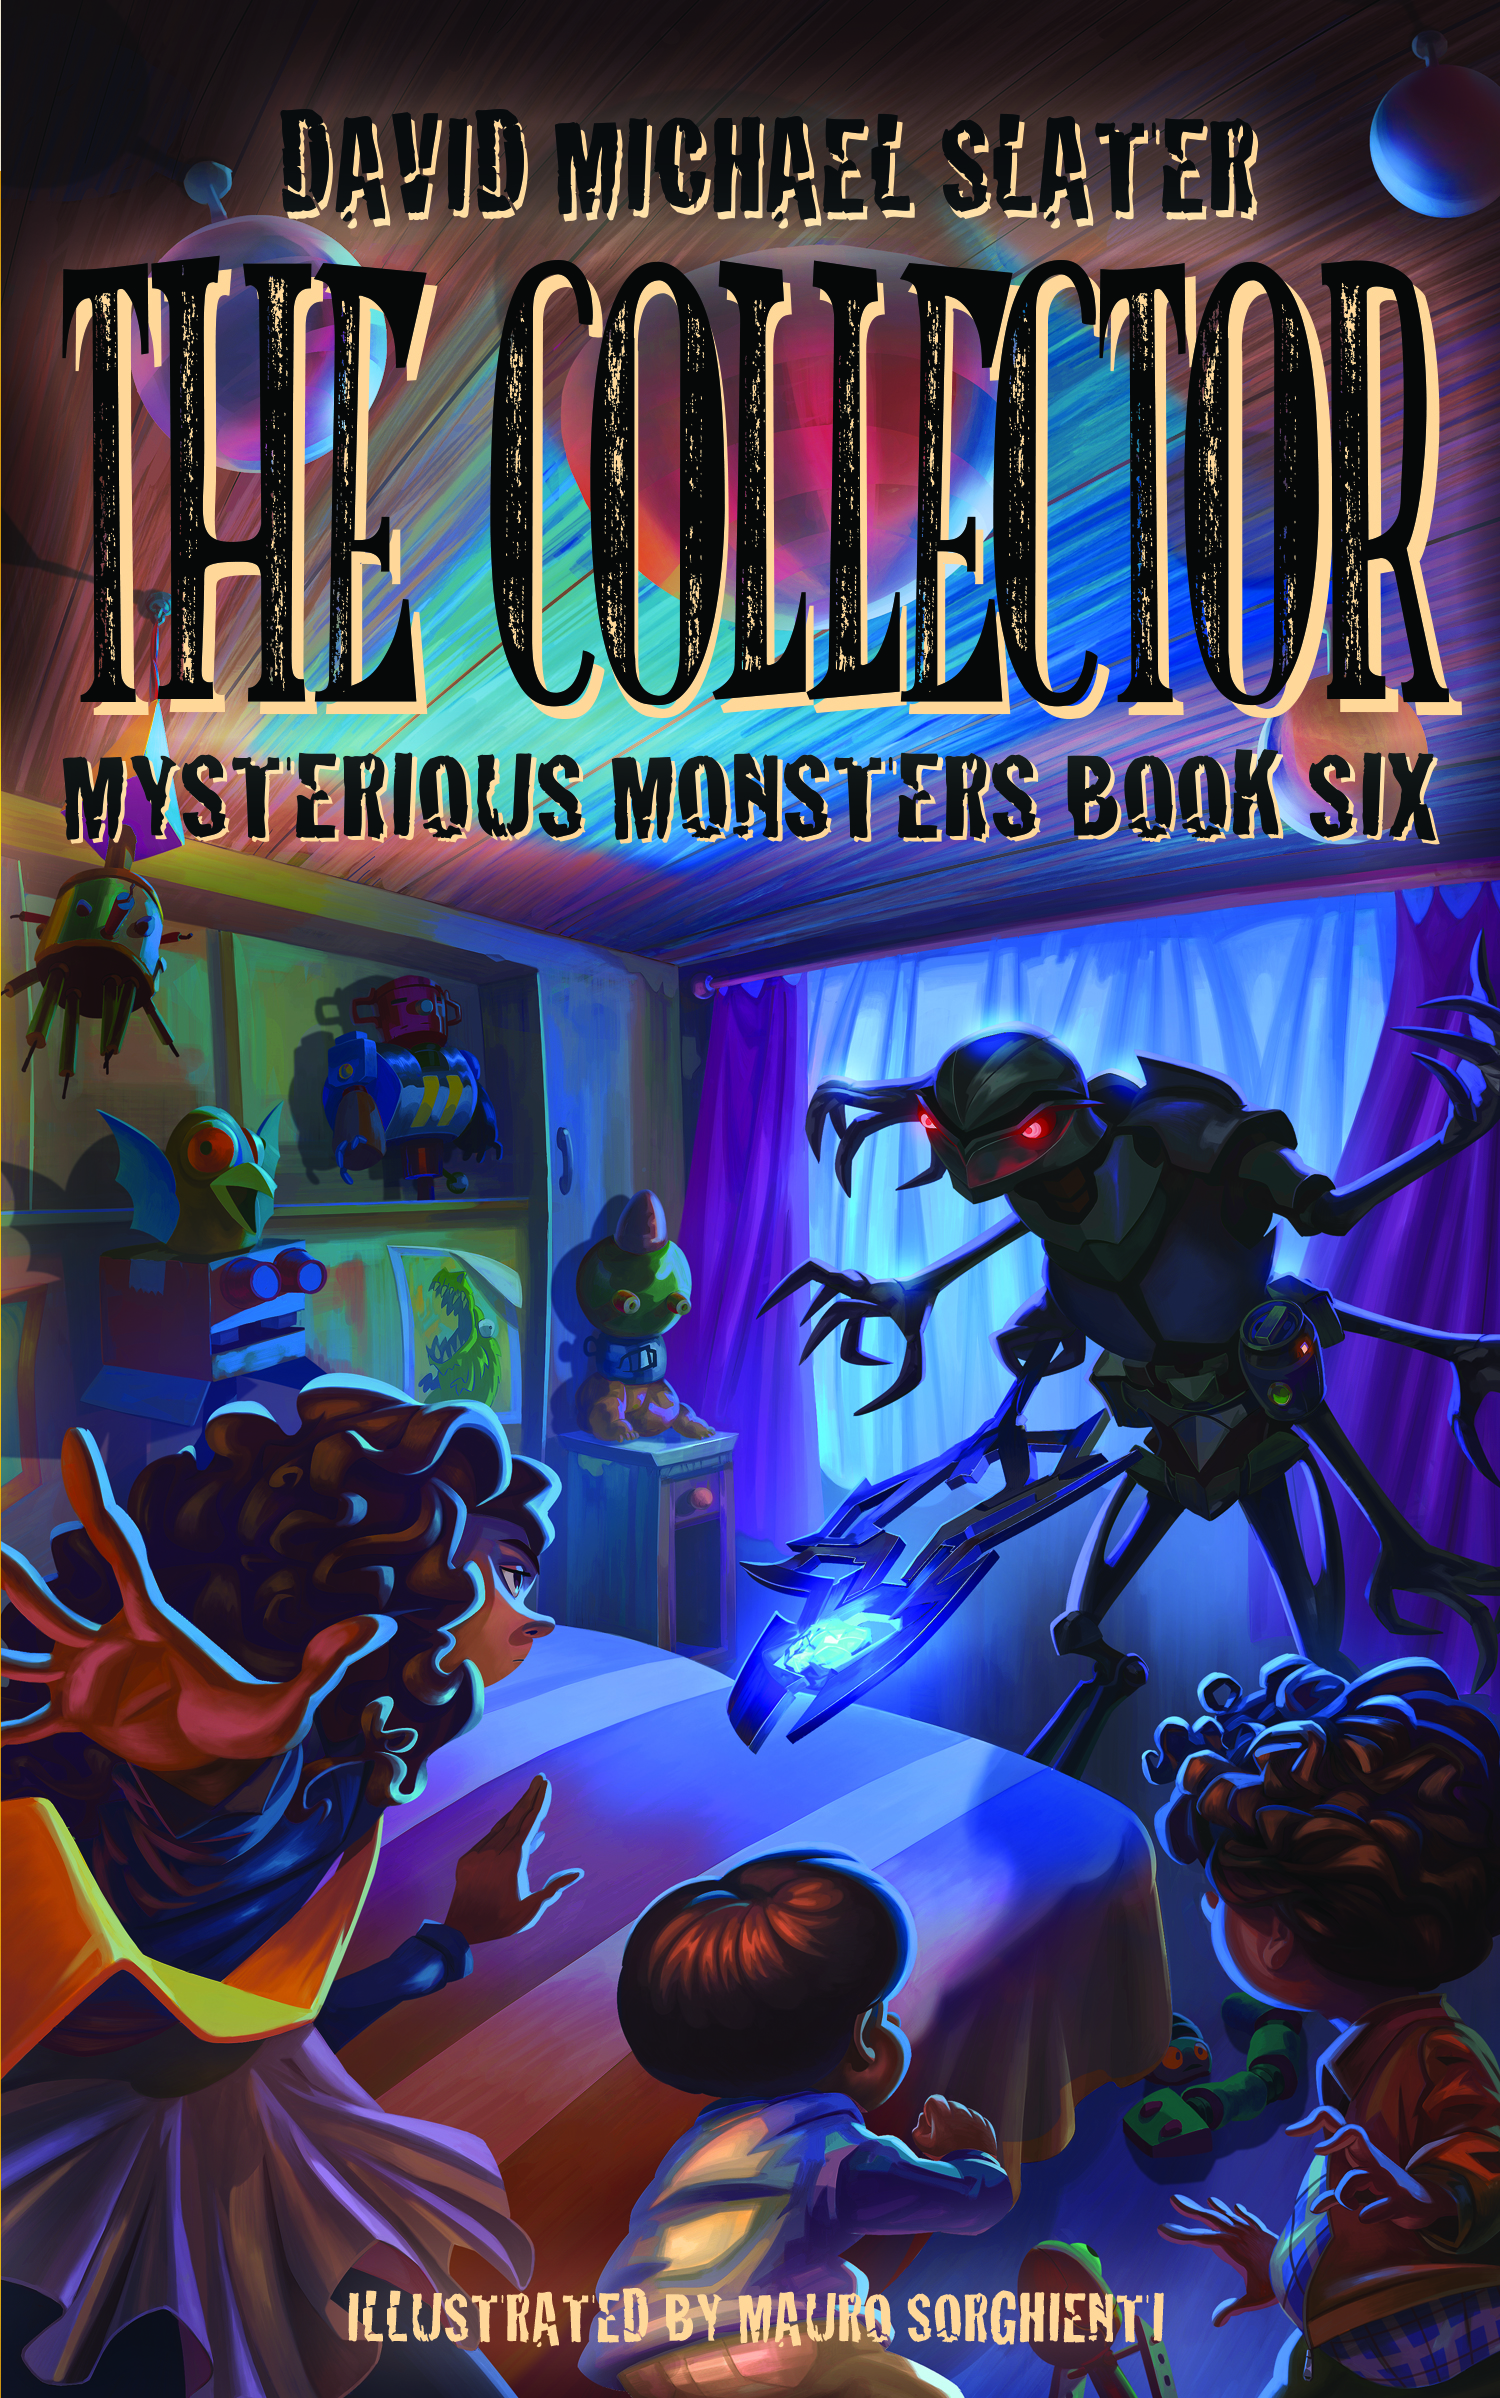 The Collector: Mysterious Monsters (book six)